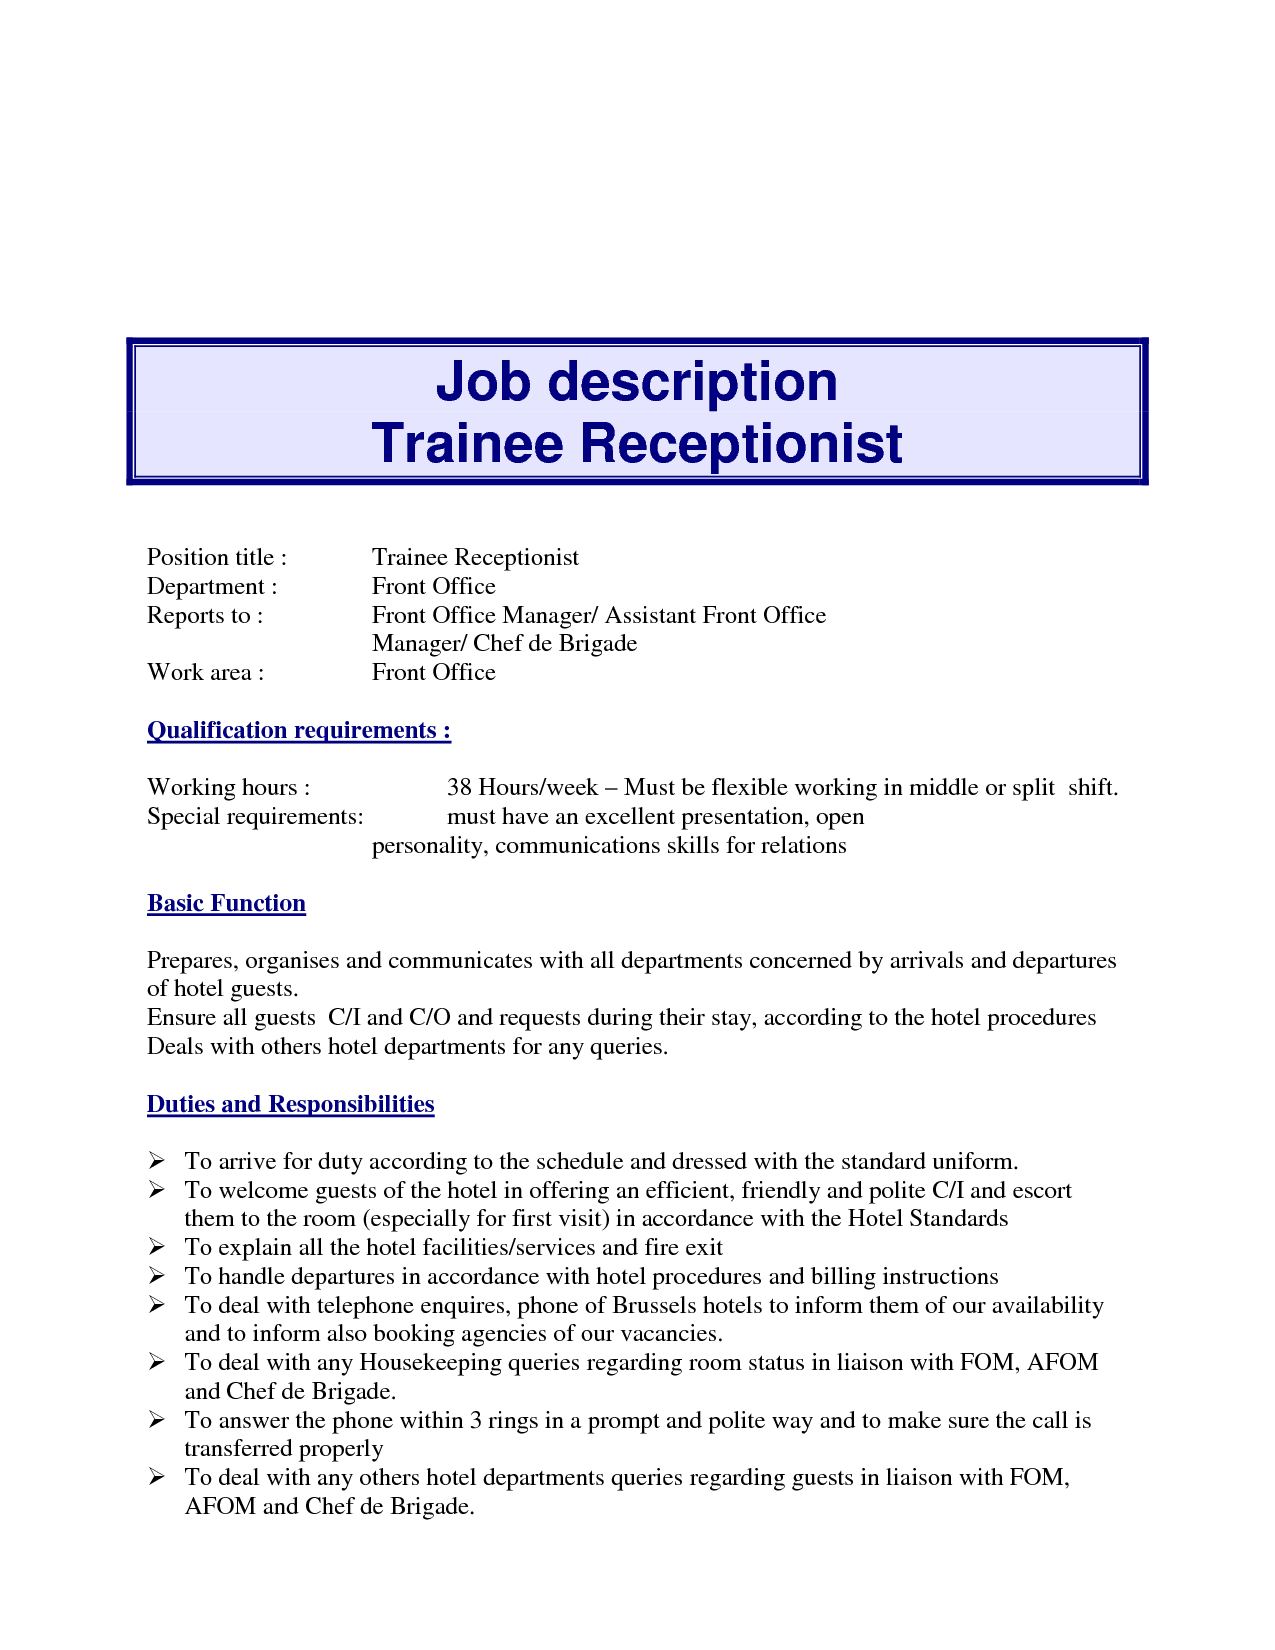 Doctor Office Receptionist Job Description Resume